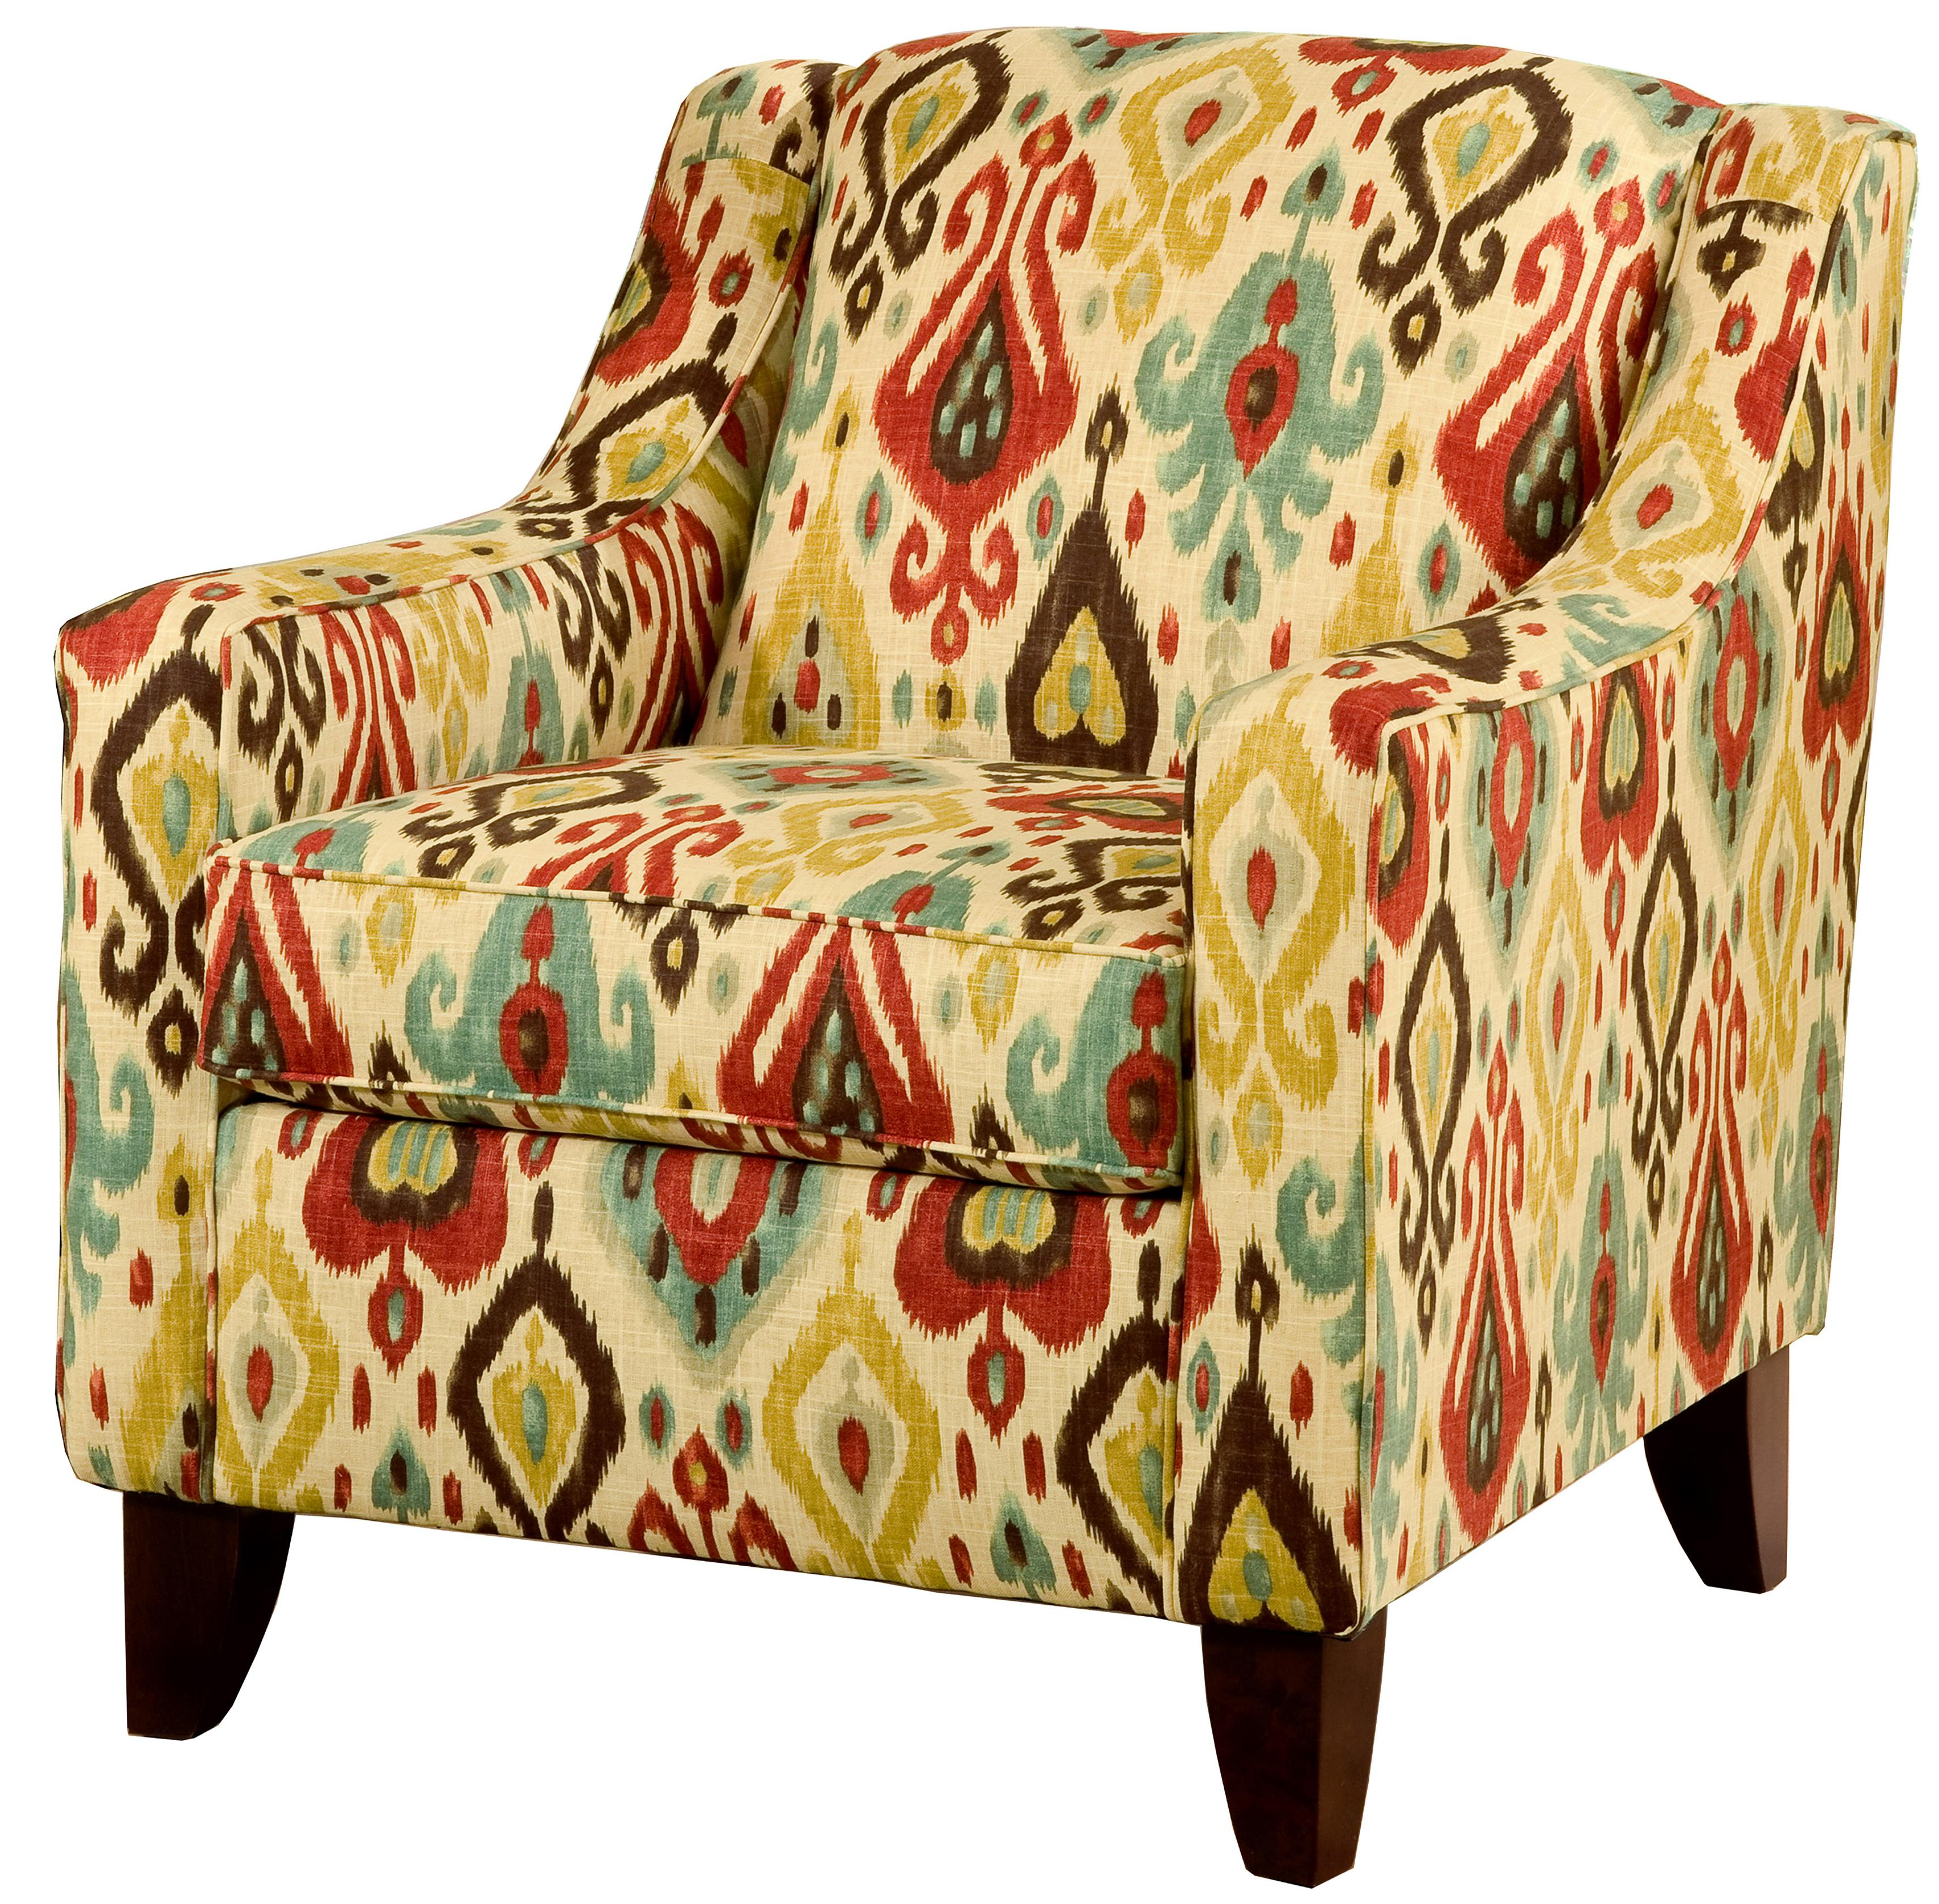 Lily Upholstered Chair by VFM Essentials at Virginia Furniture Market